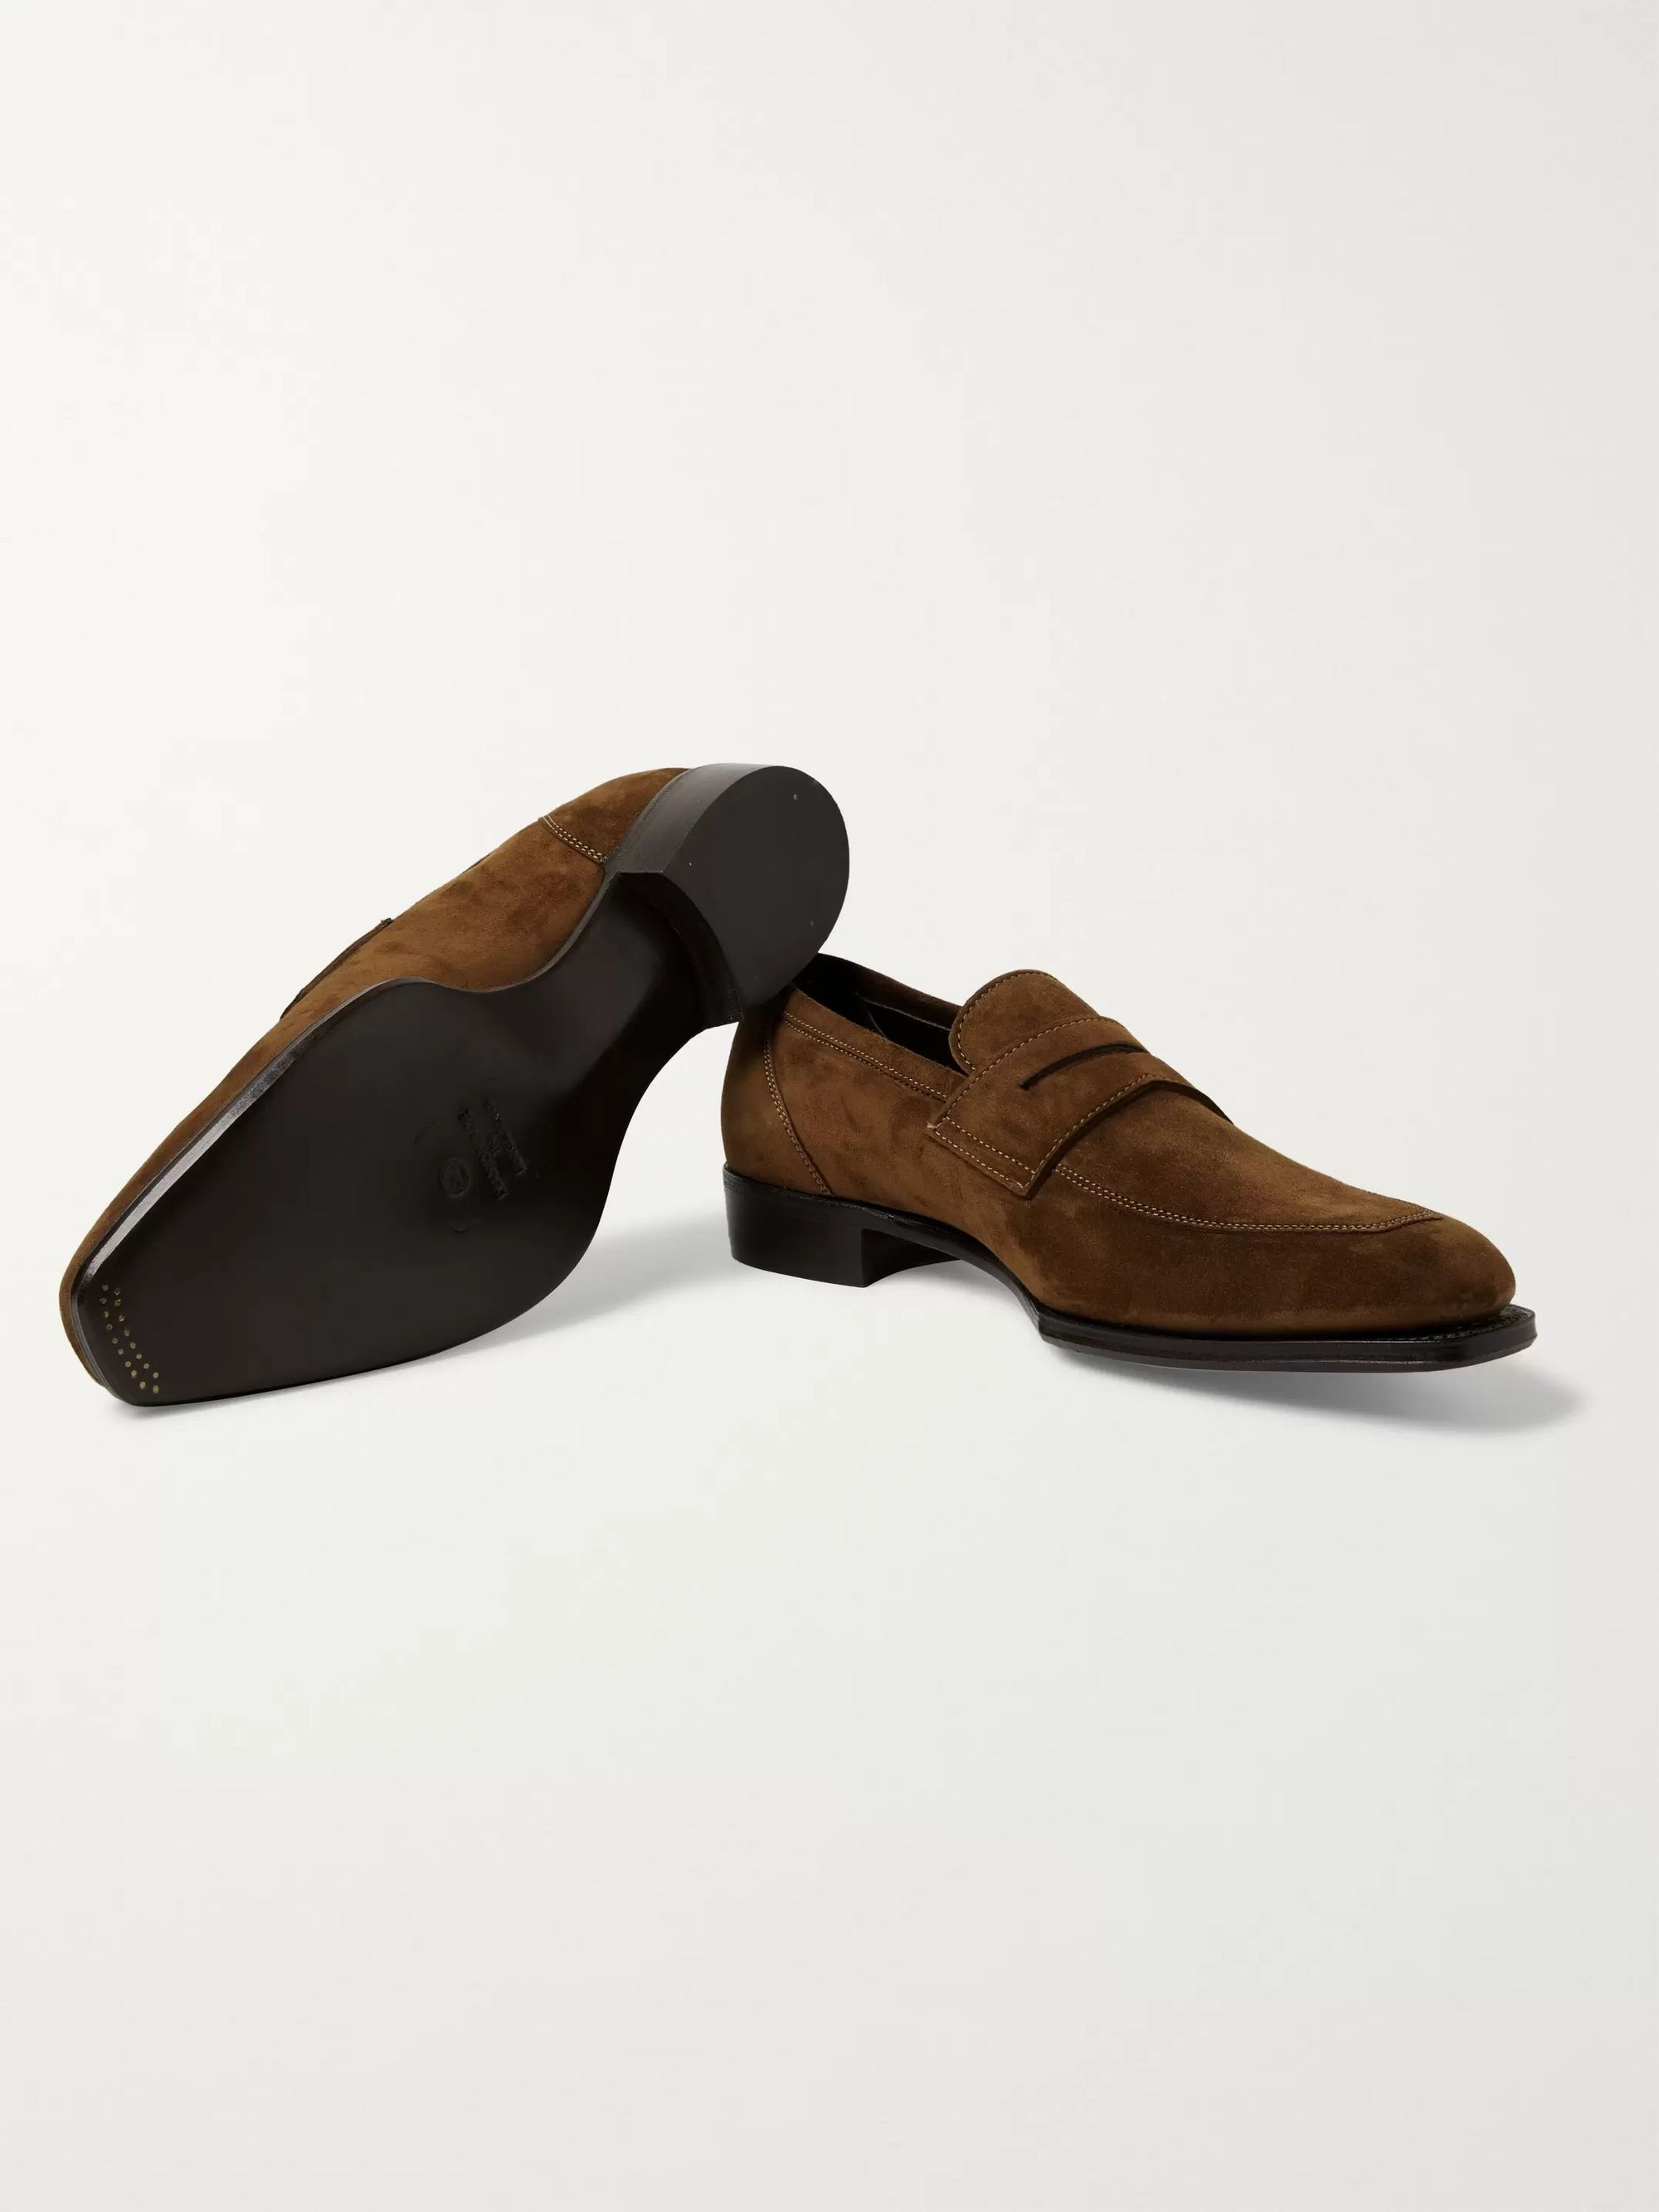 Kingsman + George Cleverley Newport Full-Grain Leather Penny Loafers